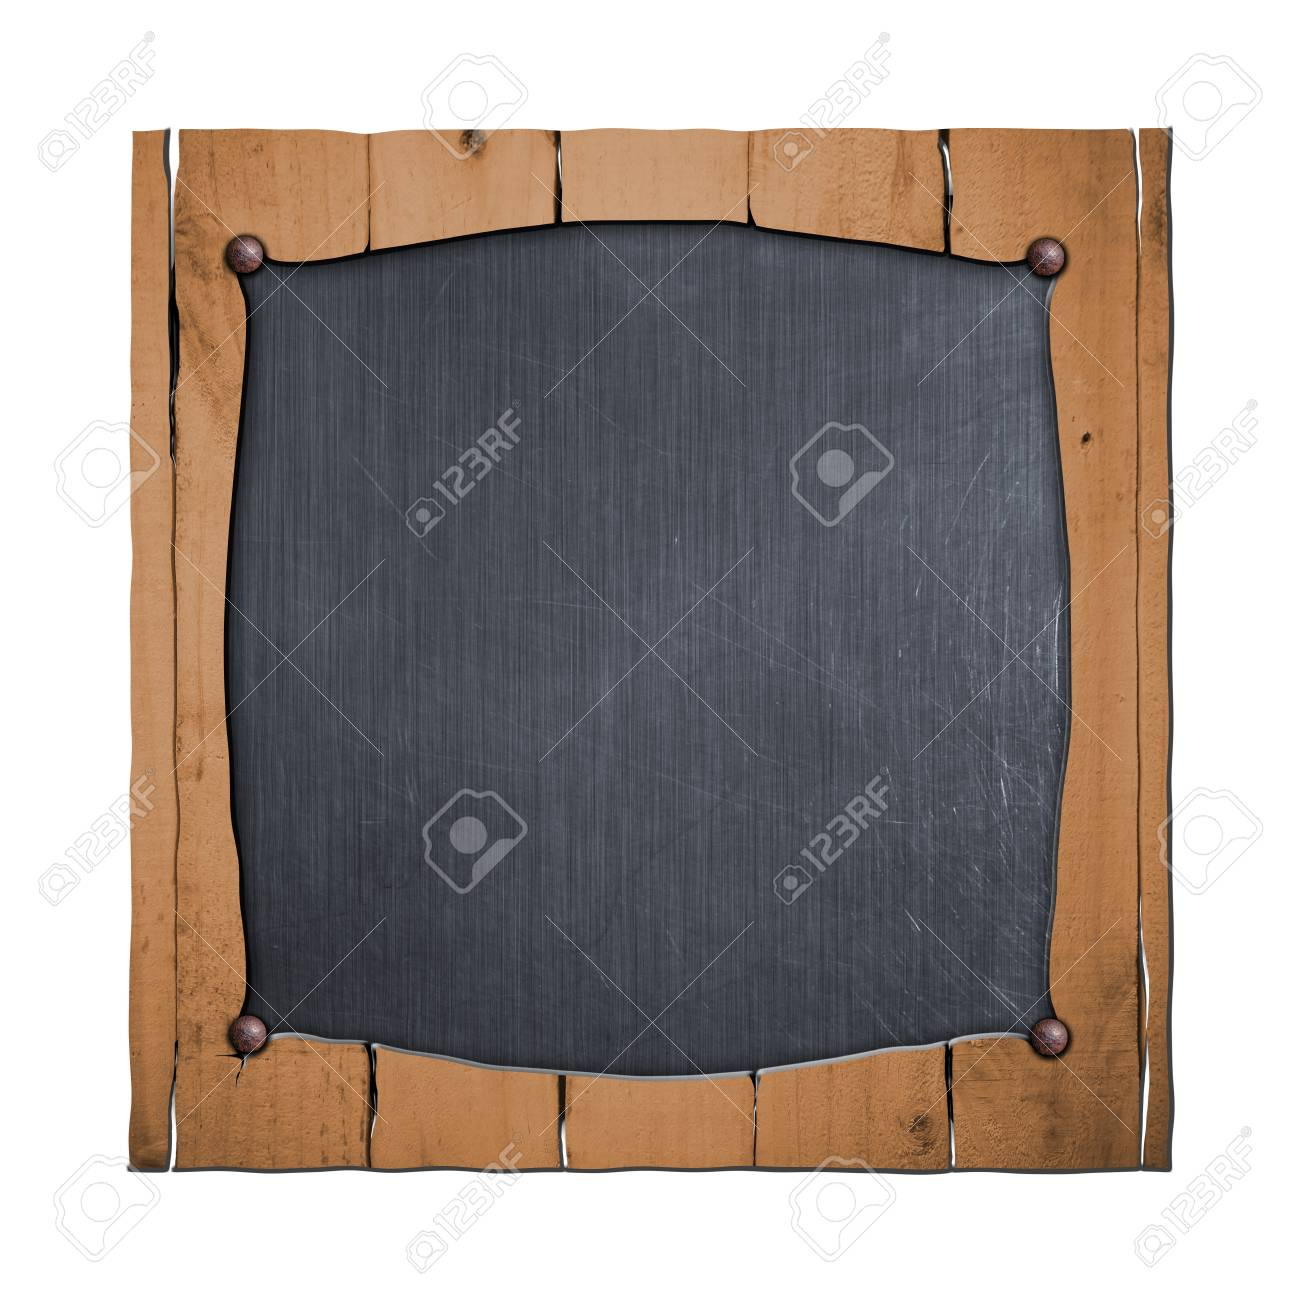 Rustic Wood Frame On Metal Plate. Isolated White Background. 3d  Illustration. Vintage Signboard